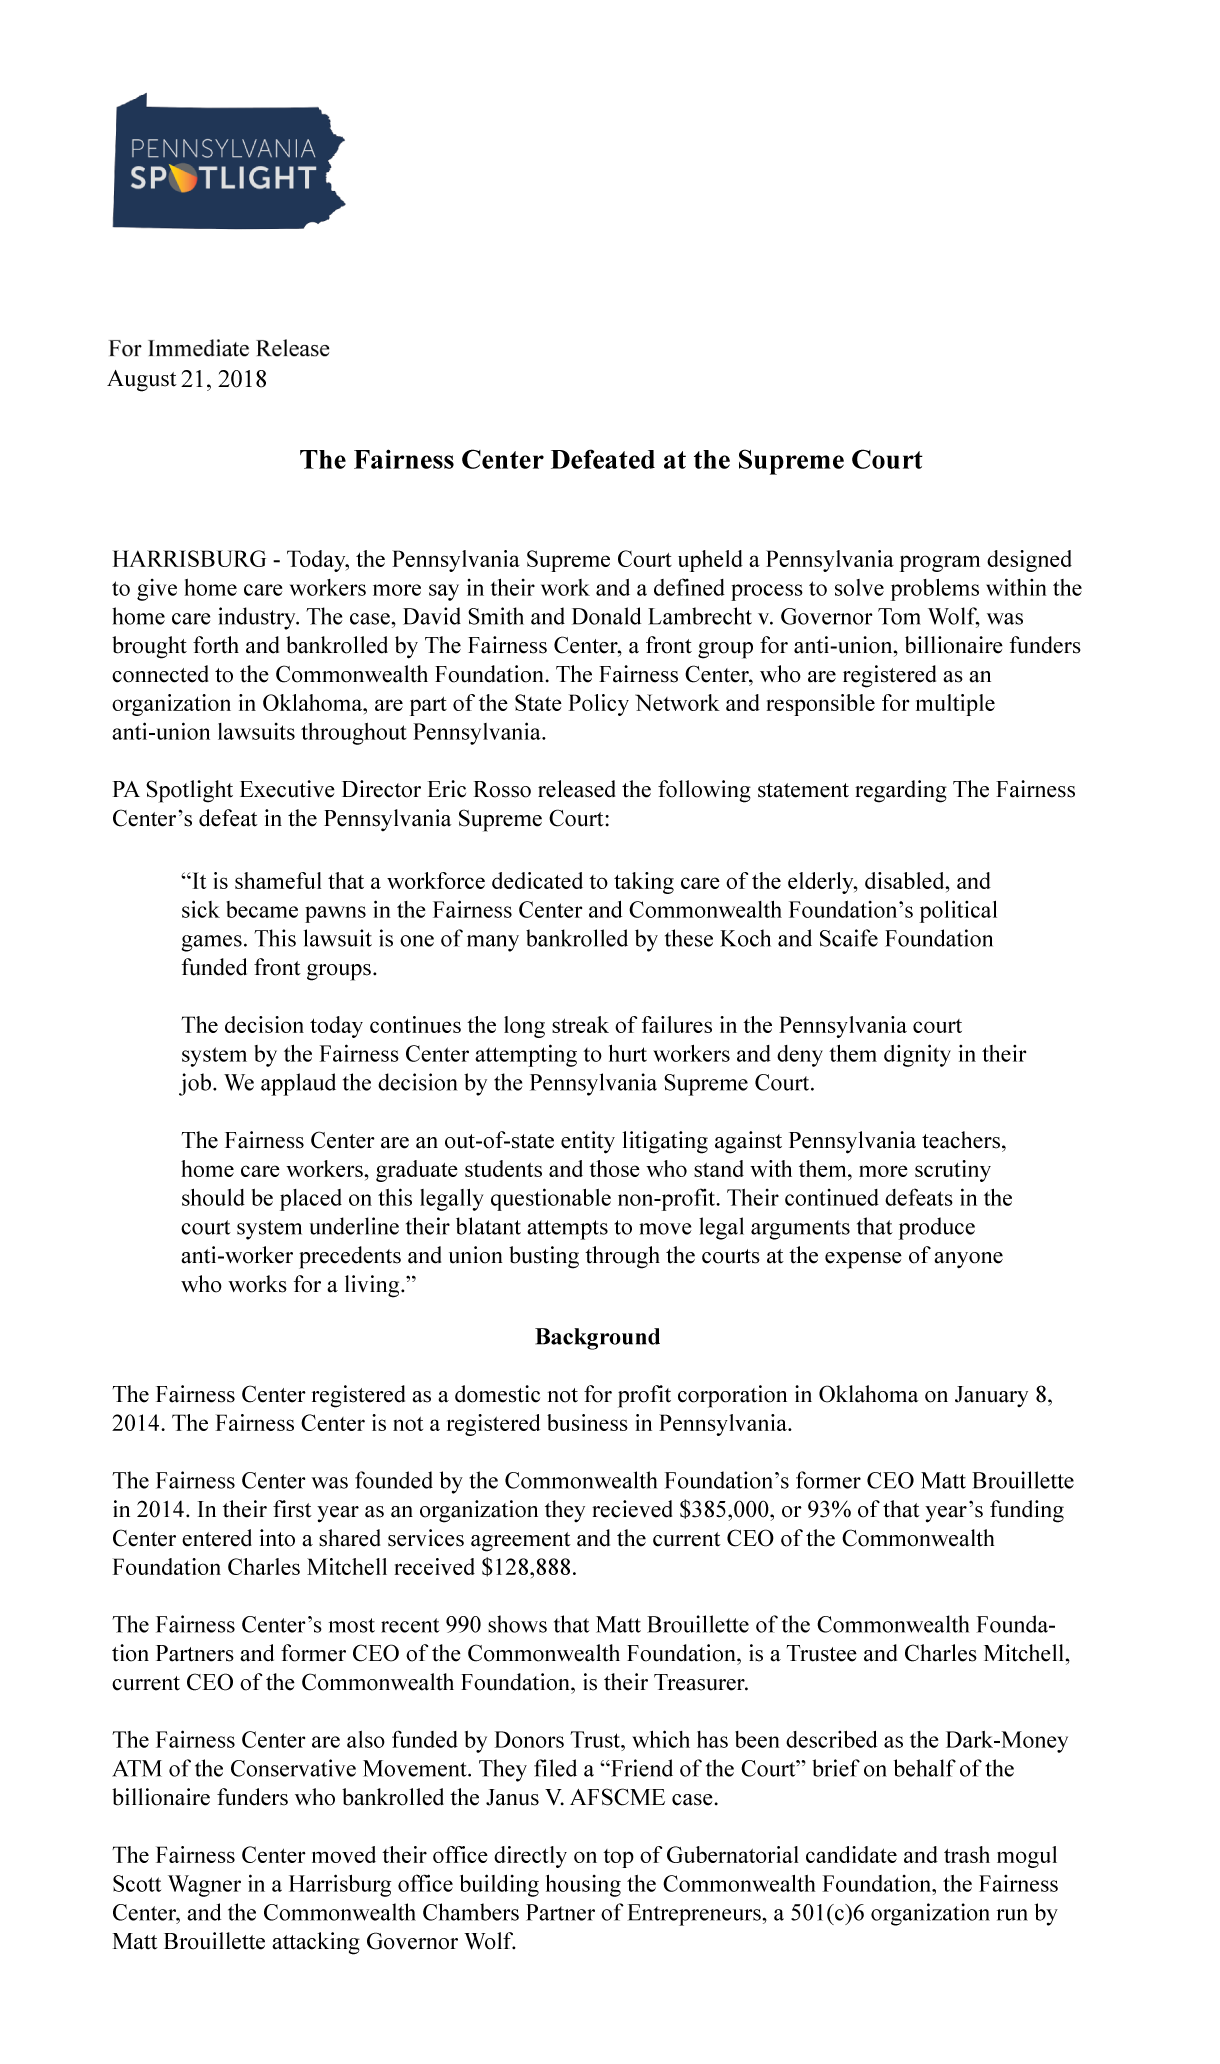 The Fairness Center Defeated at the Pennsylvania Supreme Court